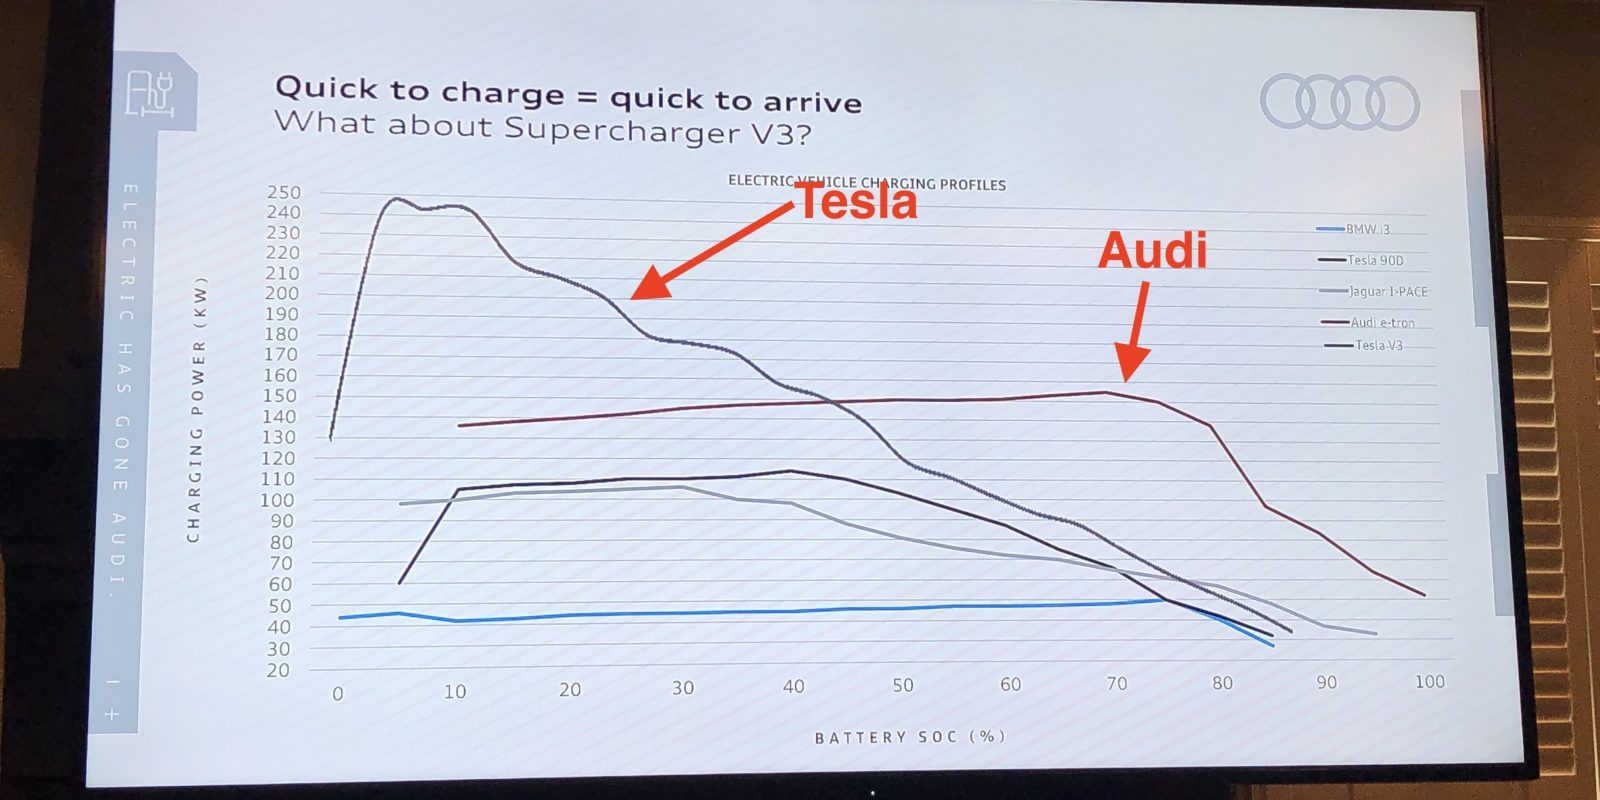 Audi goes after Tesla Supercharger V3: 'sustained power beats top power'